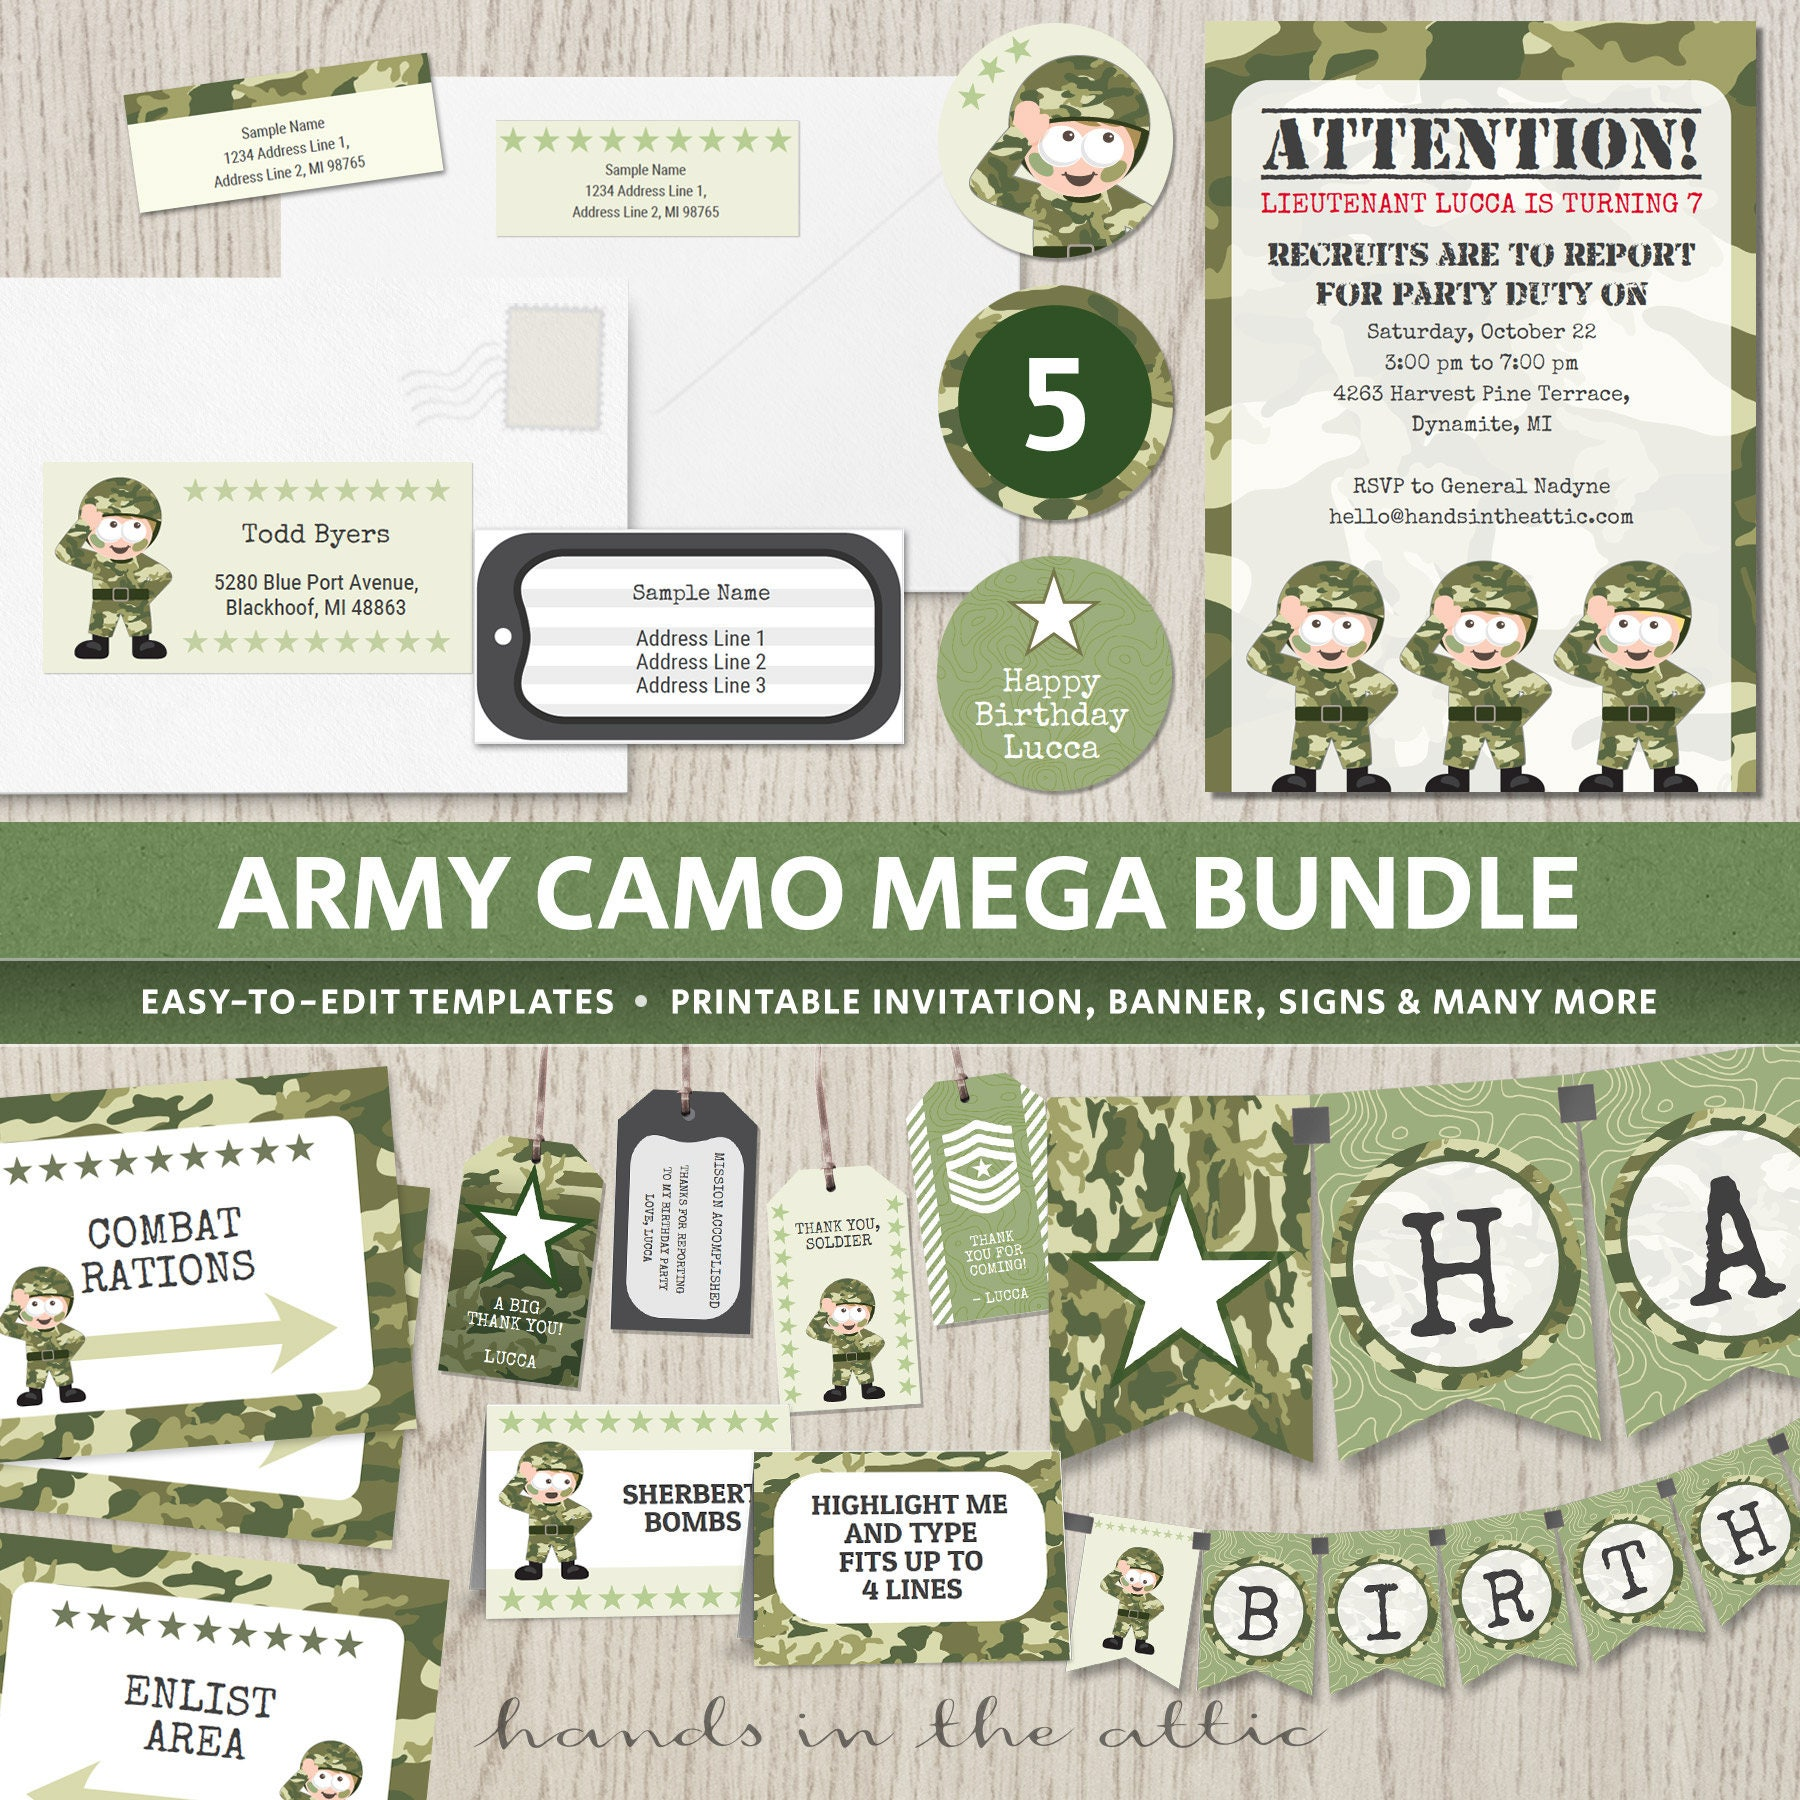 graphic regarding Digital Camo Stencil Printable titled Military camo birthday occasion, topic celebration invites elements camouflage decorations, soldier armed forces, banner boys Electronic printable templates